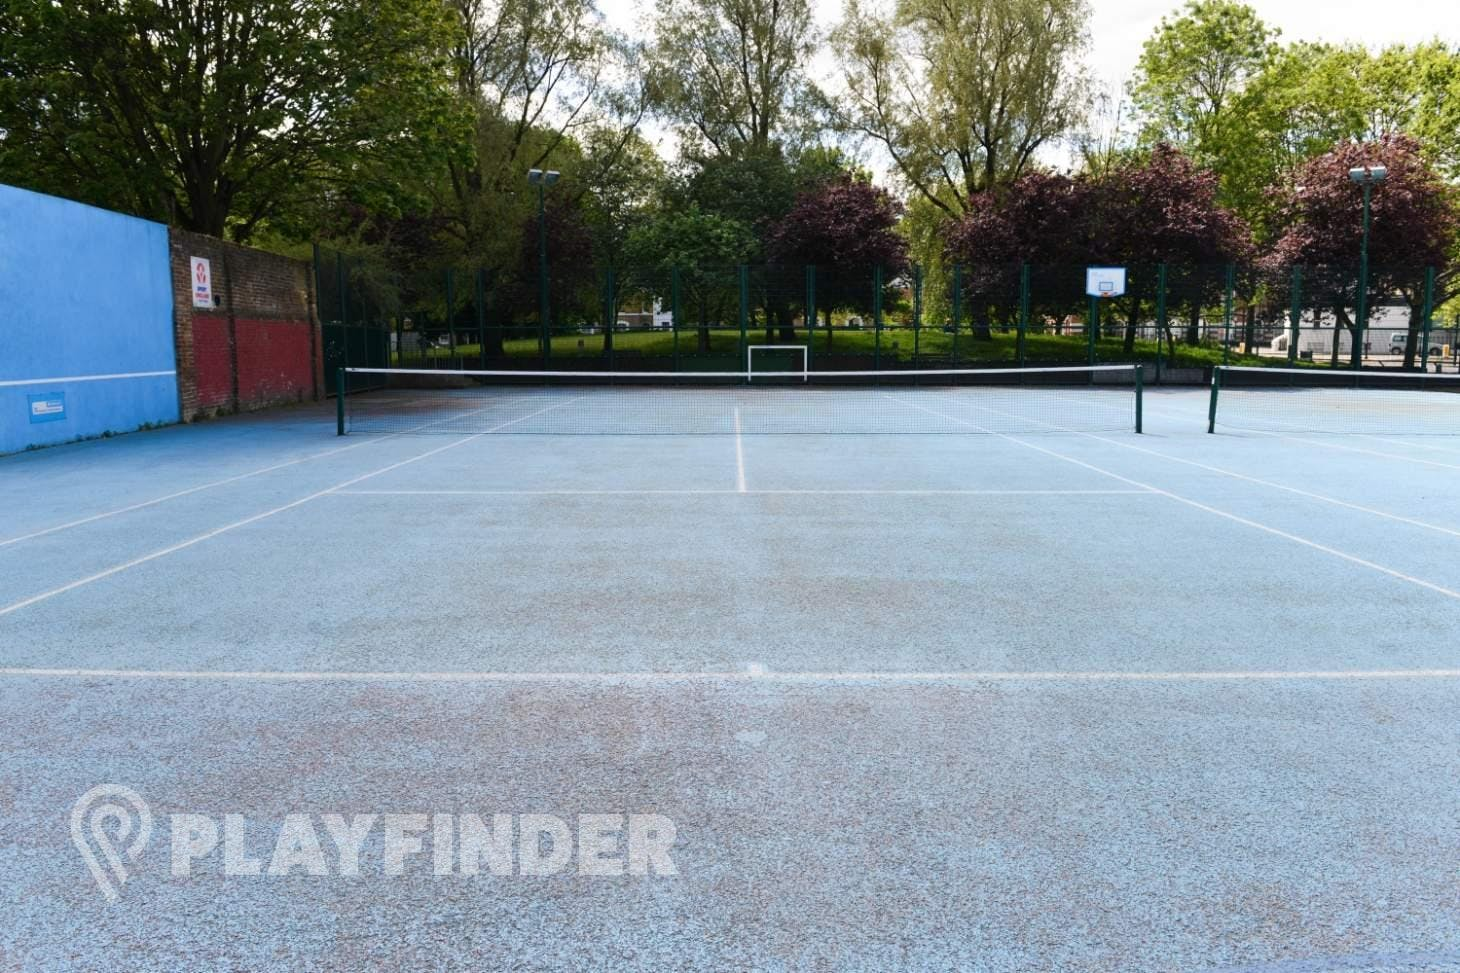 Rosemary Gardens Outdoor | Hard (macadam) tennis court